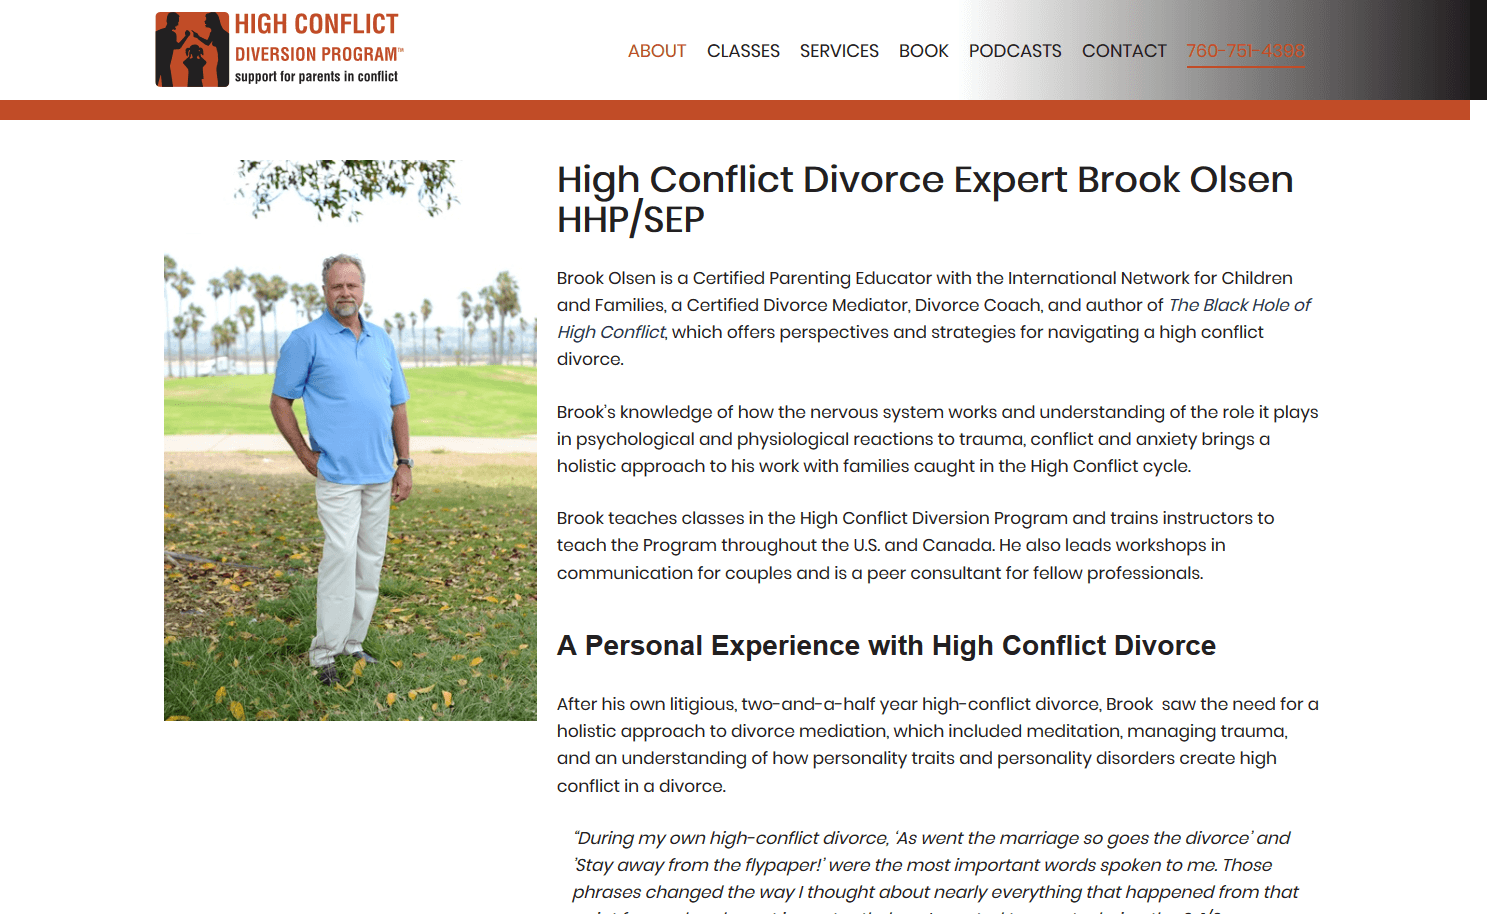 High Conflict Diversion Program About Brook